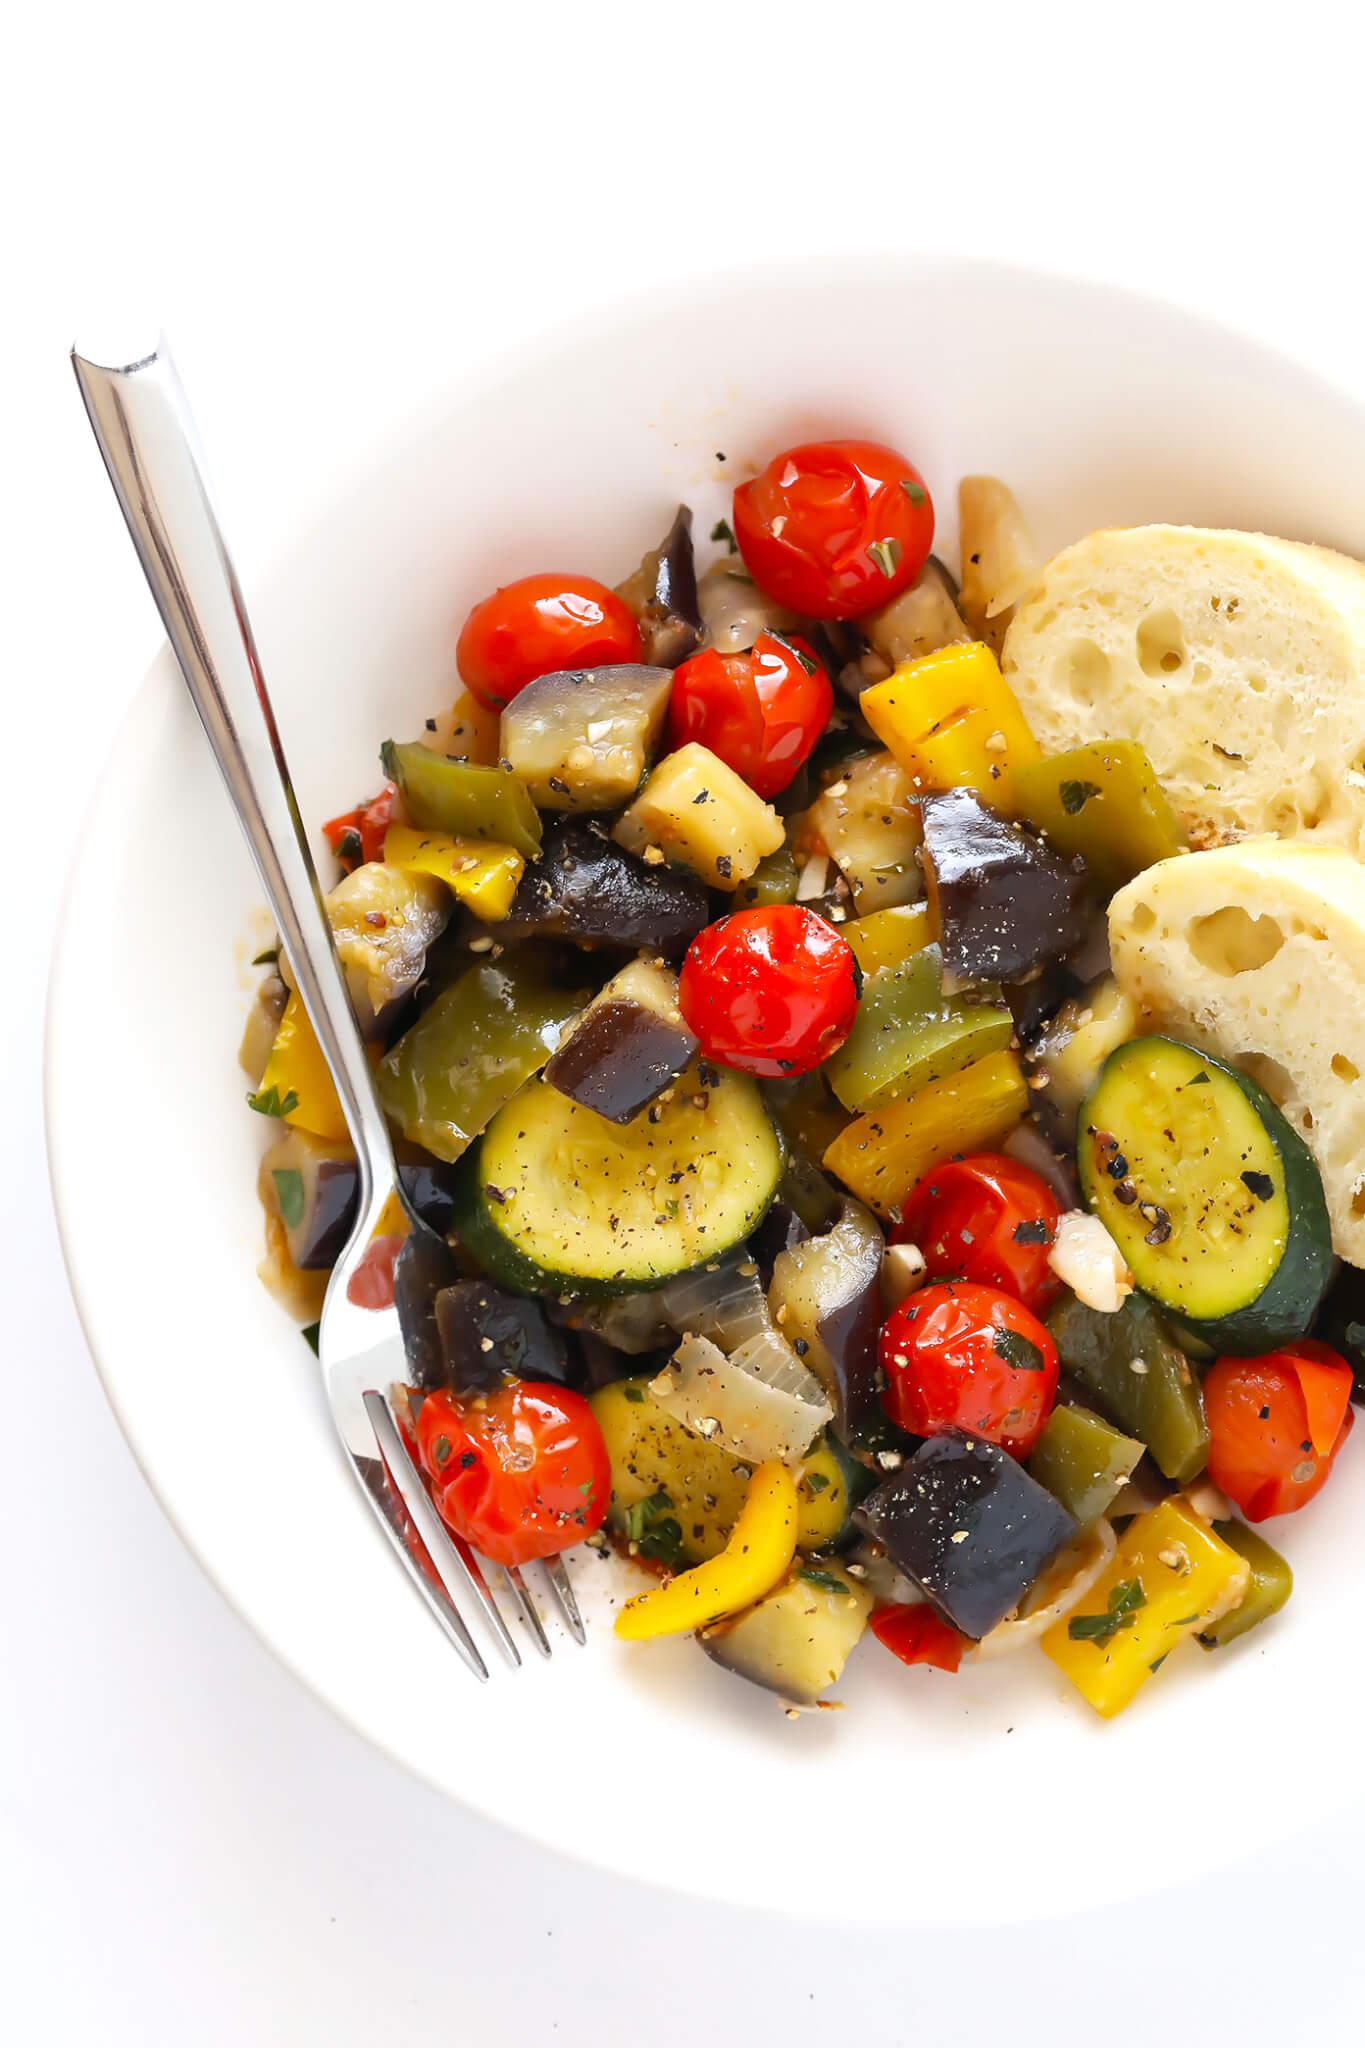 This ultra-easy Ratatouille recipe is the perfect way to use up summer vegetables (zucchini, eggplant, tomato, bell peppers, you name it!), and tastes absolutely delicious when served with crusty French bread (or pasta or quinoa or rice). An awesome healthy dinner idea, and one that's easy to customize with your favorite ingredients. | gimmesomeoven.com (Gluten-Free / Vegetarian / Vegan)